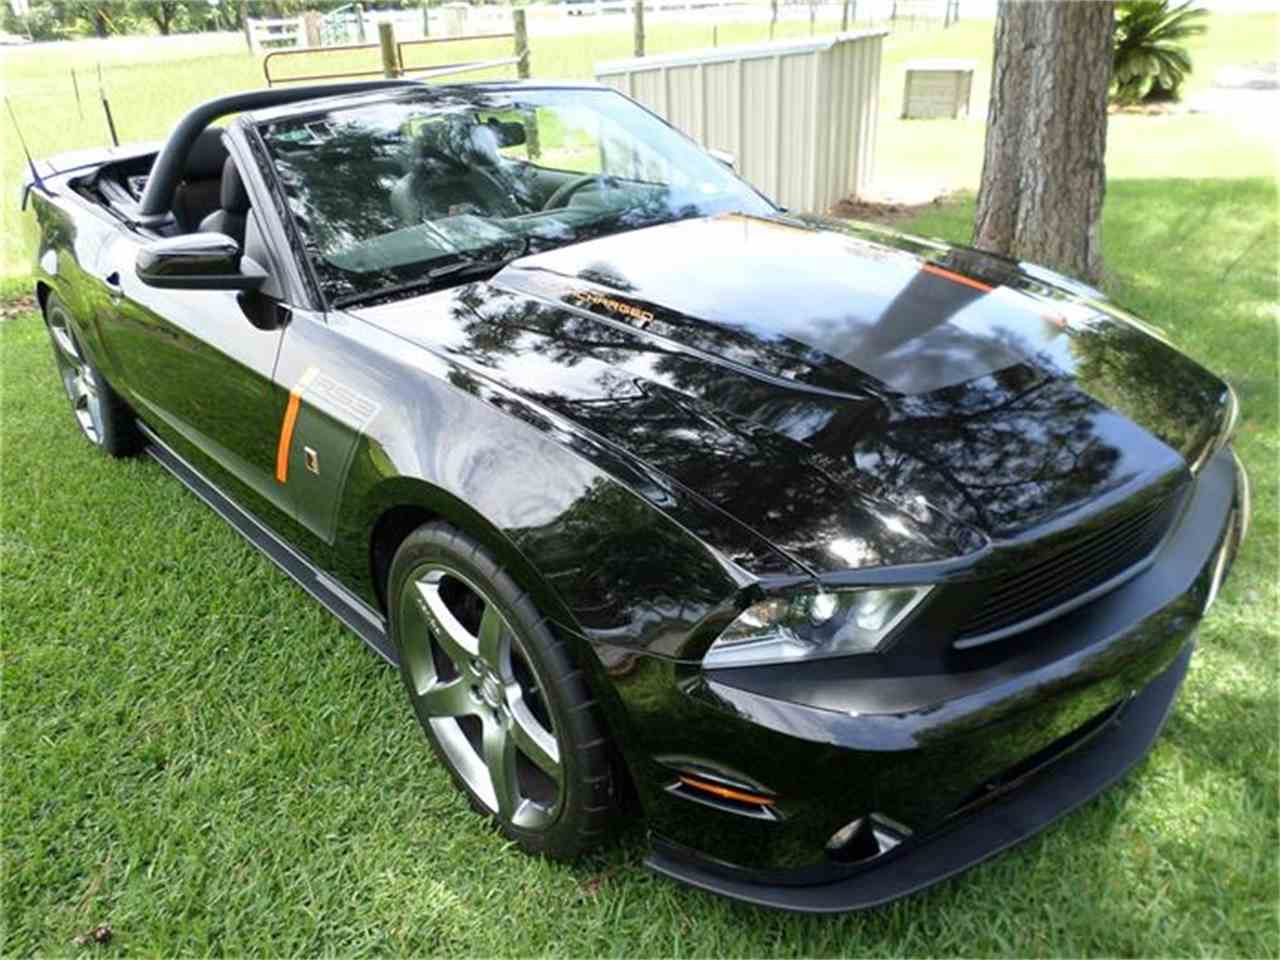 2012 Ford Mustang (Roush) for Sale - CC-684491